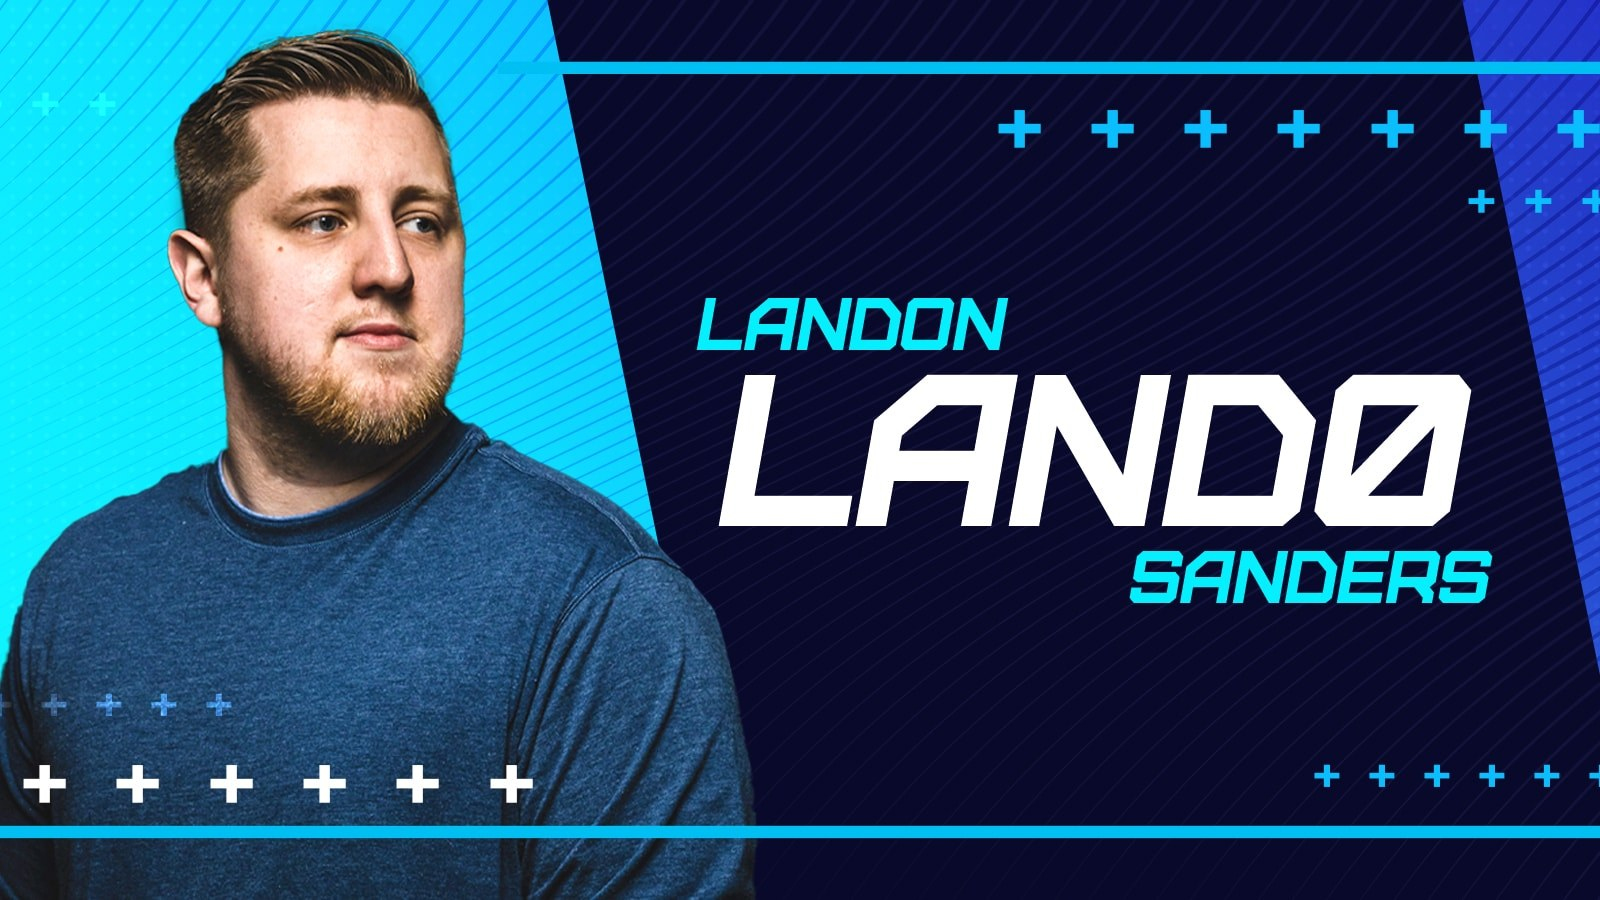 'Off The Break' Host and 'Call of Duty' League Commentator Land0 on His Rise in Esports - Hero image